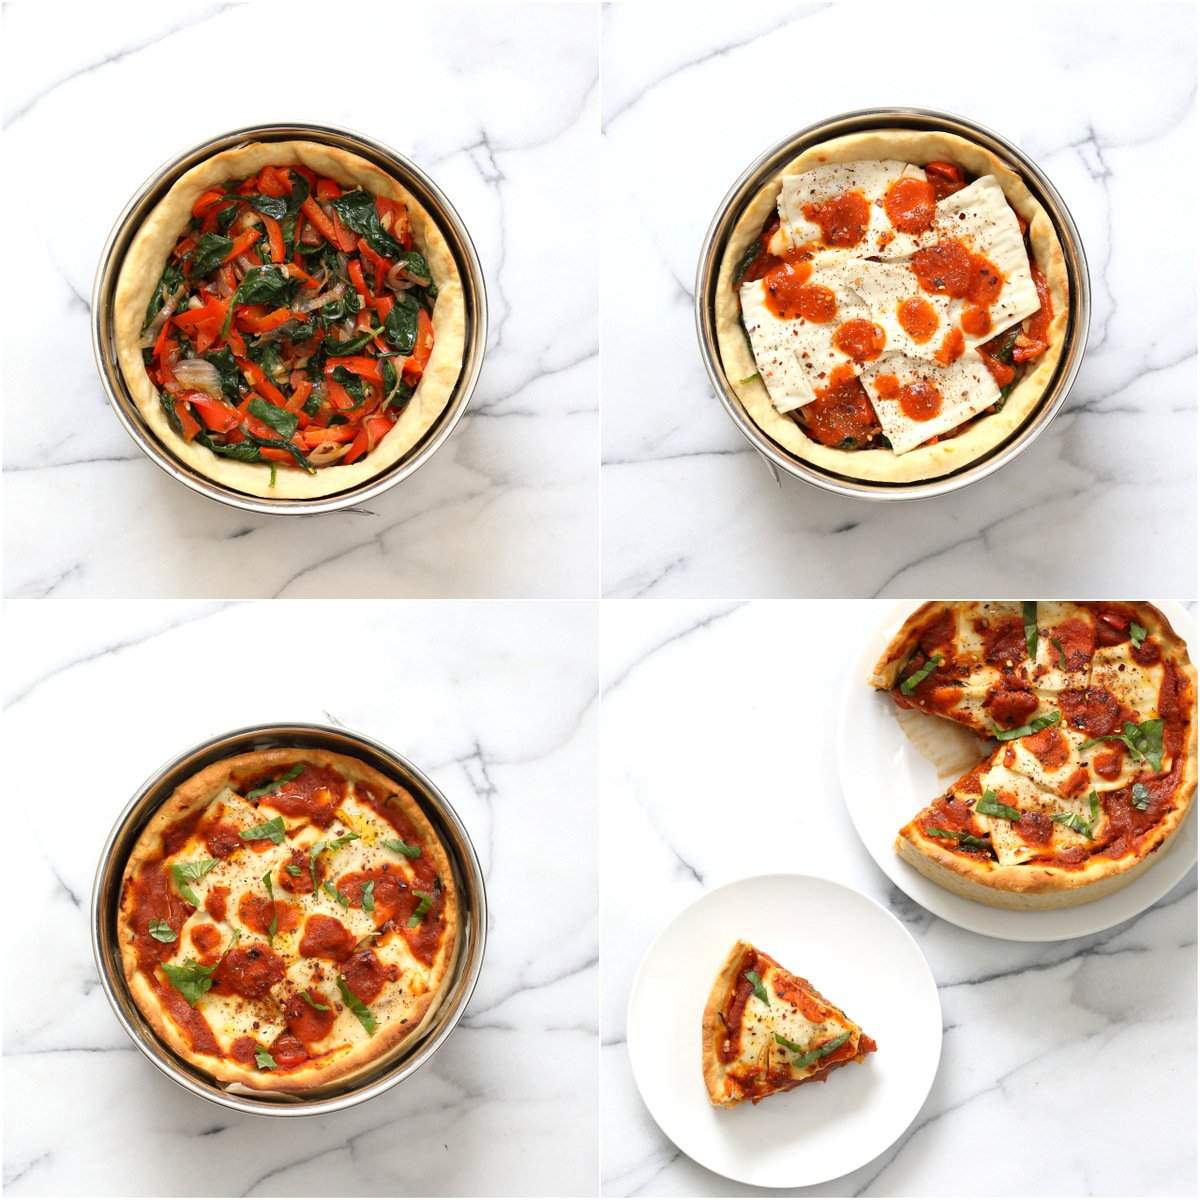 Vegan Deep Dish Pizza Recipe - 20 min Crust! - Vegan Richa